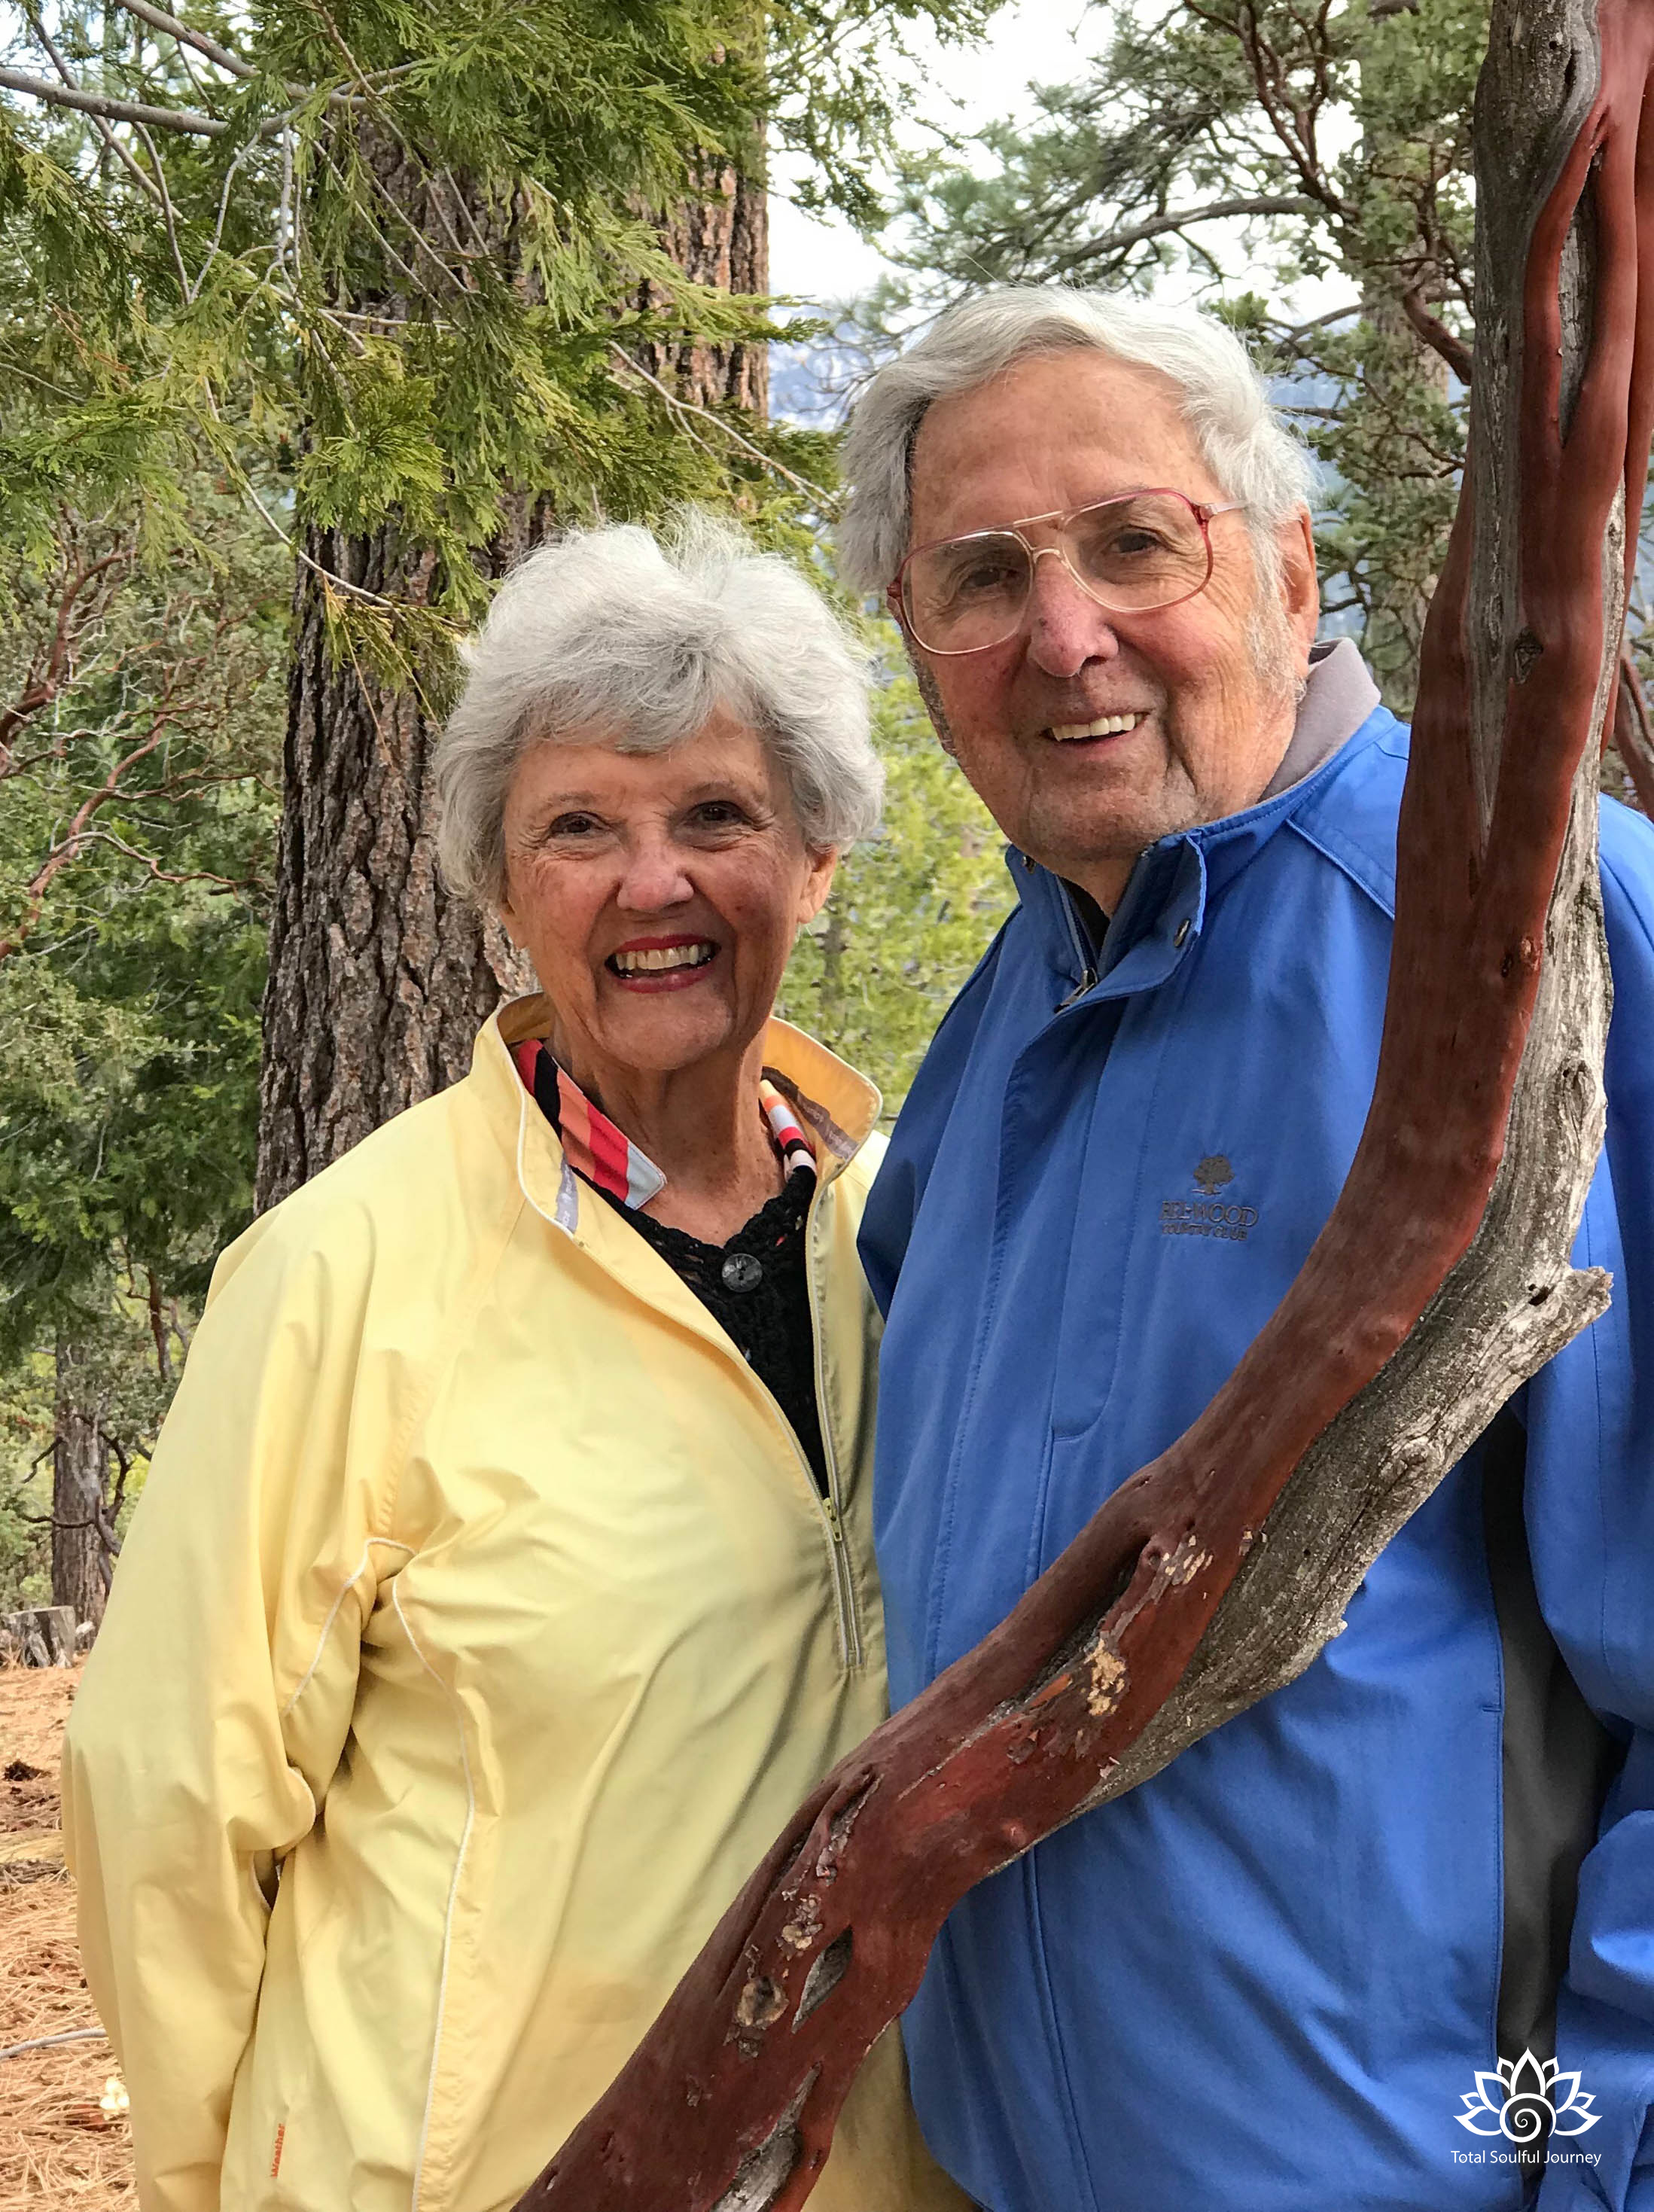 Successful happy long term relationships DO exist. Meet my parents, Bob and Jackie who led by great example with respect, loyalty and honesty. A great couple as well as amazing parents!